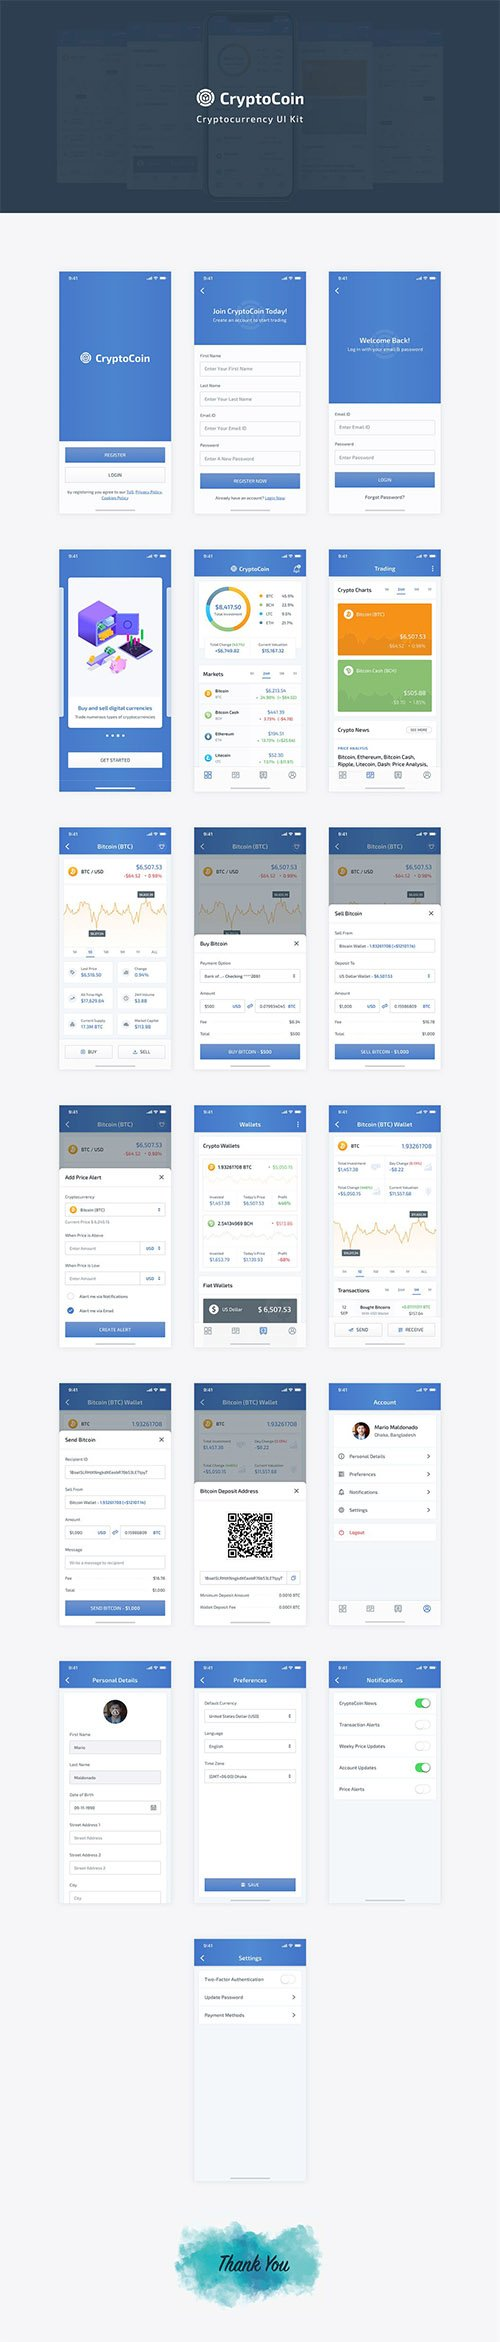 CryptoCoin Cryptocurrency UI Kit